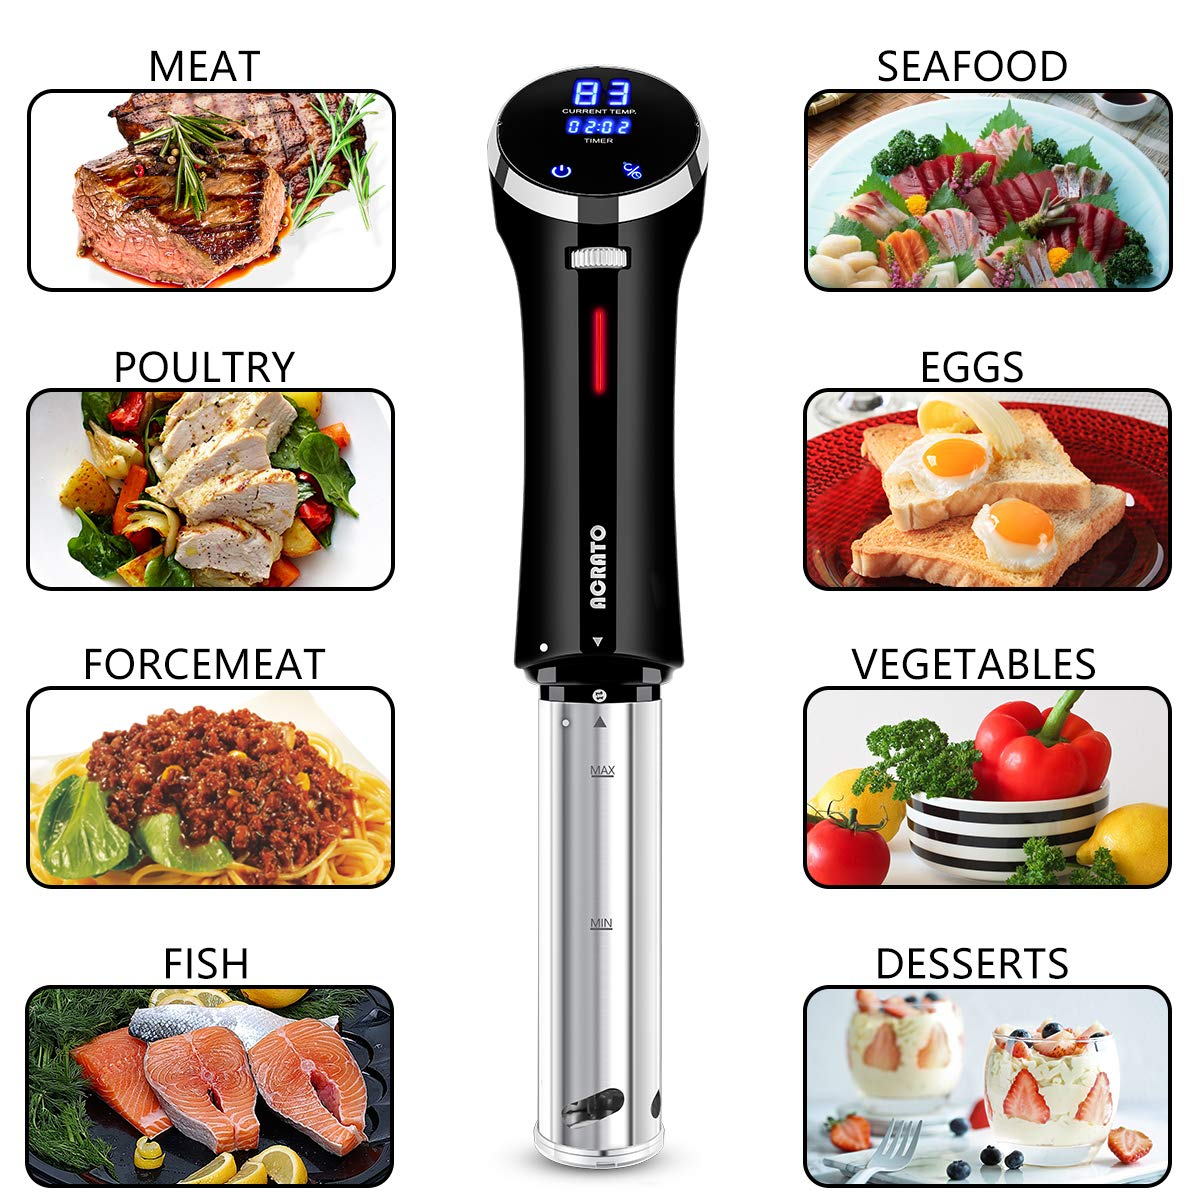 Sous Vide Immersion Circulator, Precise Sous Vide Cooker, ACRATO Portable Kitchen Appliance with Precise Temperature Timer LCD Display , ETL&FDA Approved, 1000 Watts, Stainless, Resuable Free Sous Vide Bags Kits Included, Perfect for Food C